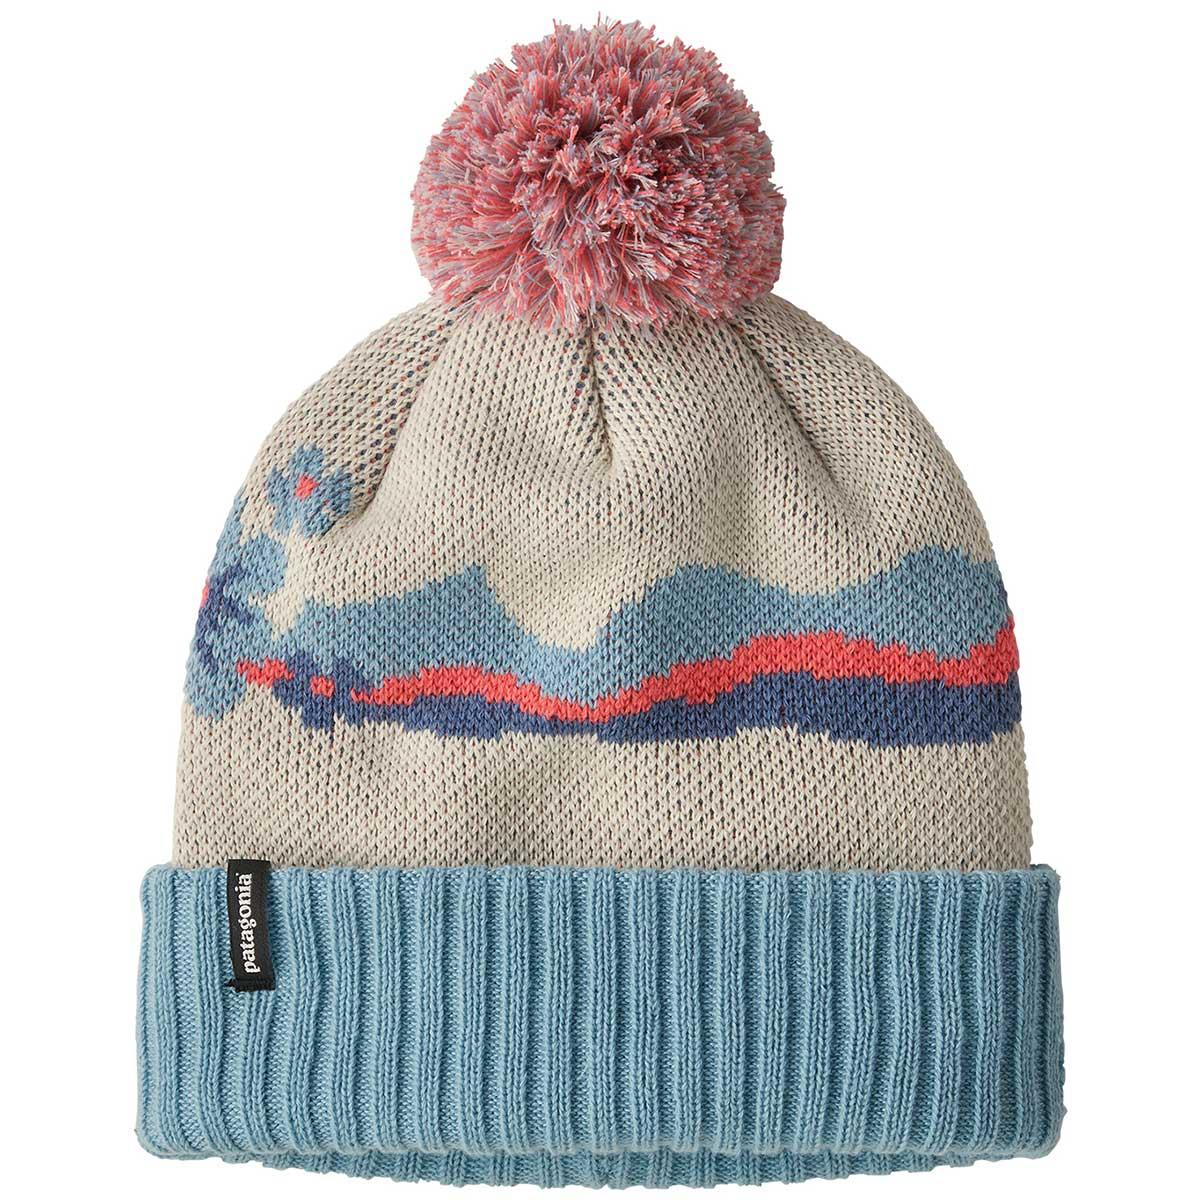 Patagonia kid's Powder Town Beanie in Arctic Floral and Oyster White